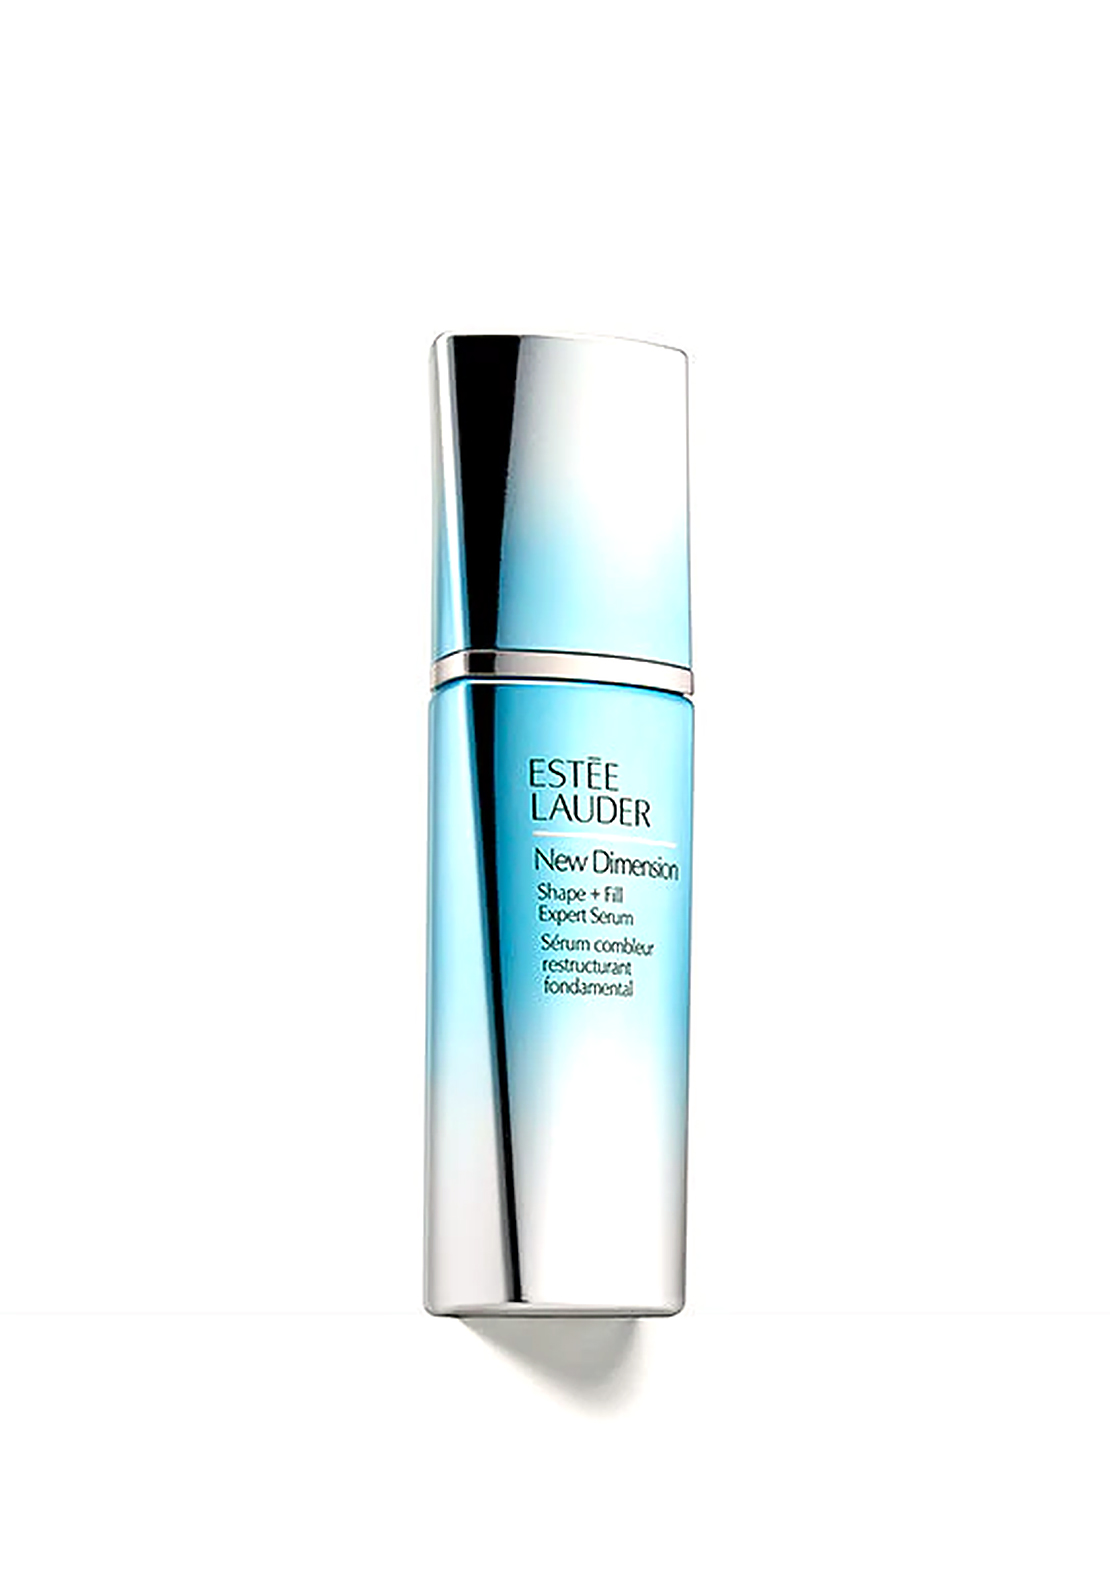 Estee Lauder New Dimension Shape & Fill Expert Serum, 30ml